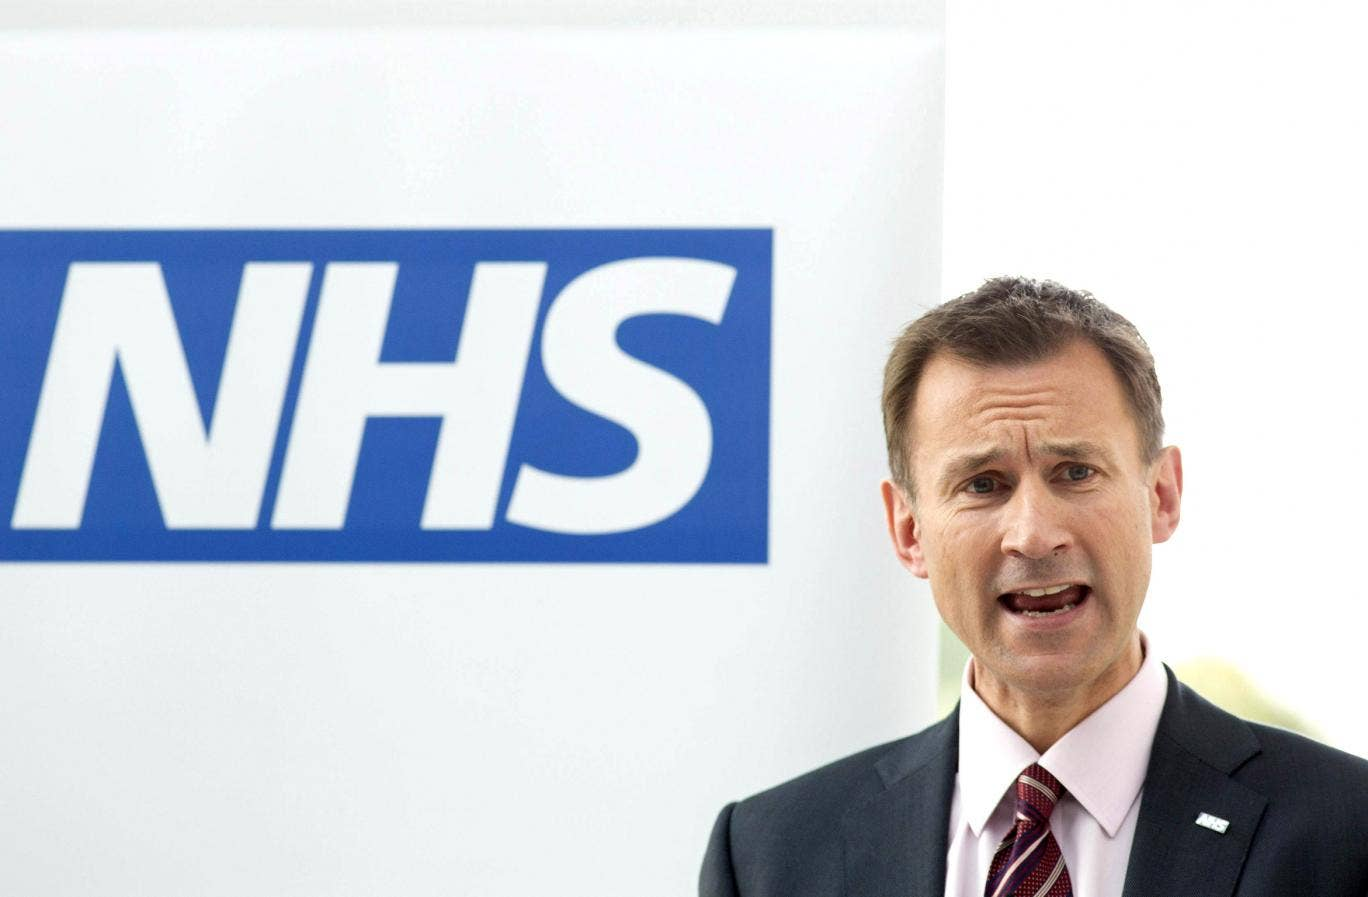 Health Secretary Jeremy Hunt has received complaints from patients who have been 'passed around hospital'